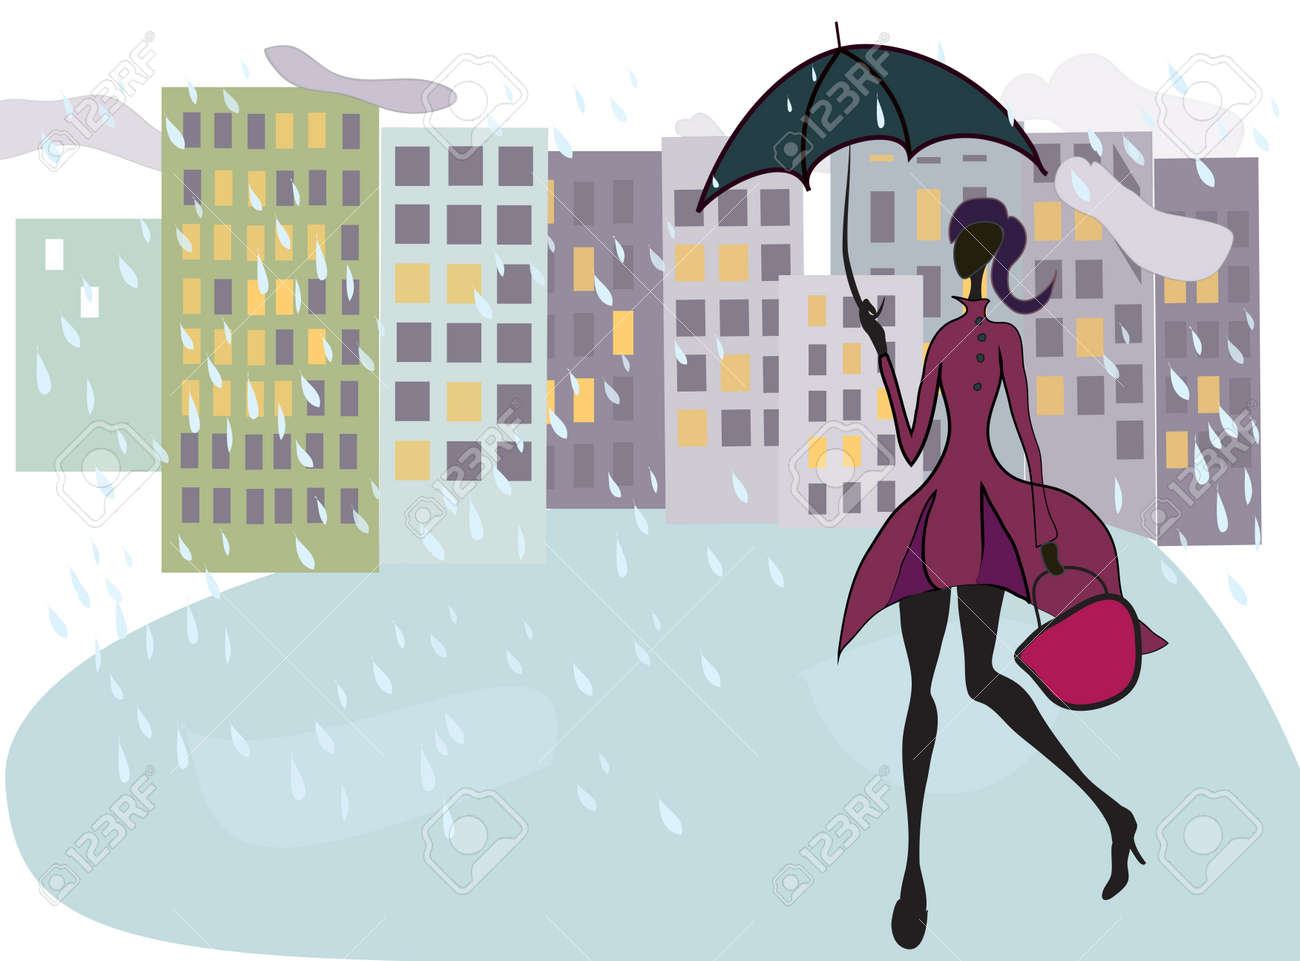 Beautiful Girl Walking in the Rain with Umbrella After Shopping Stock Vector - 19246717